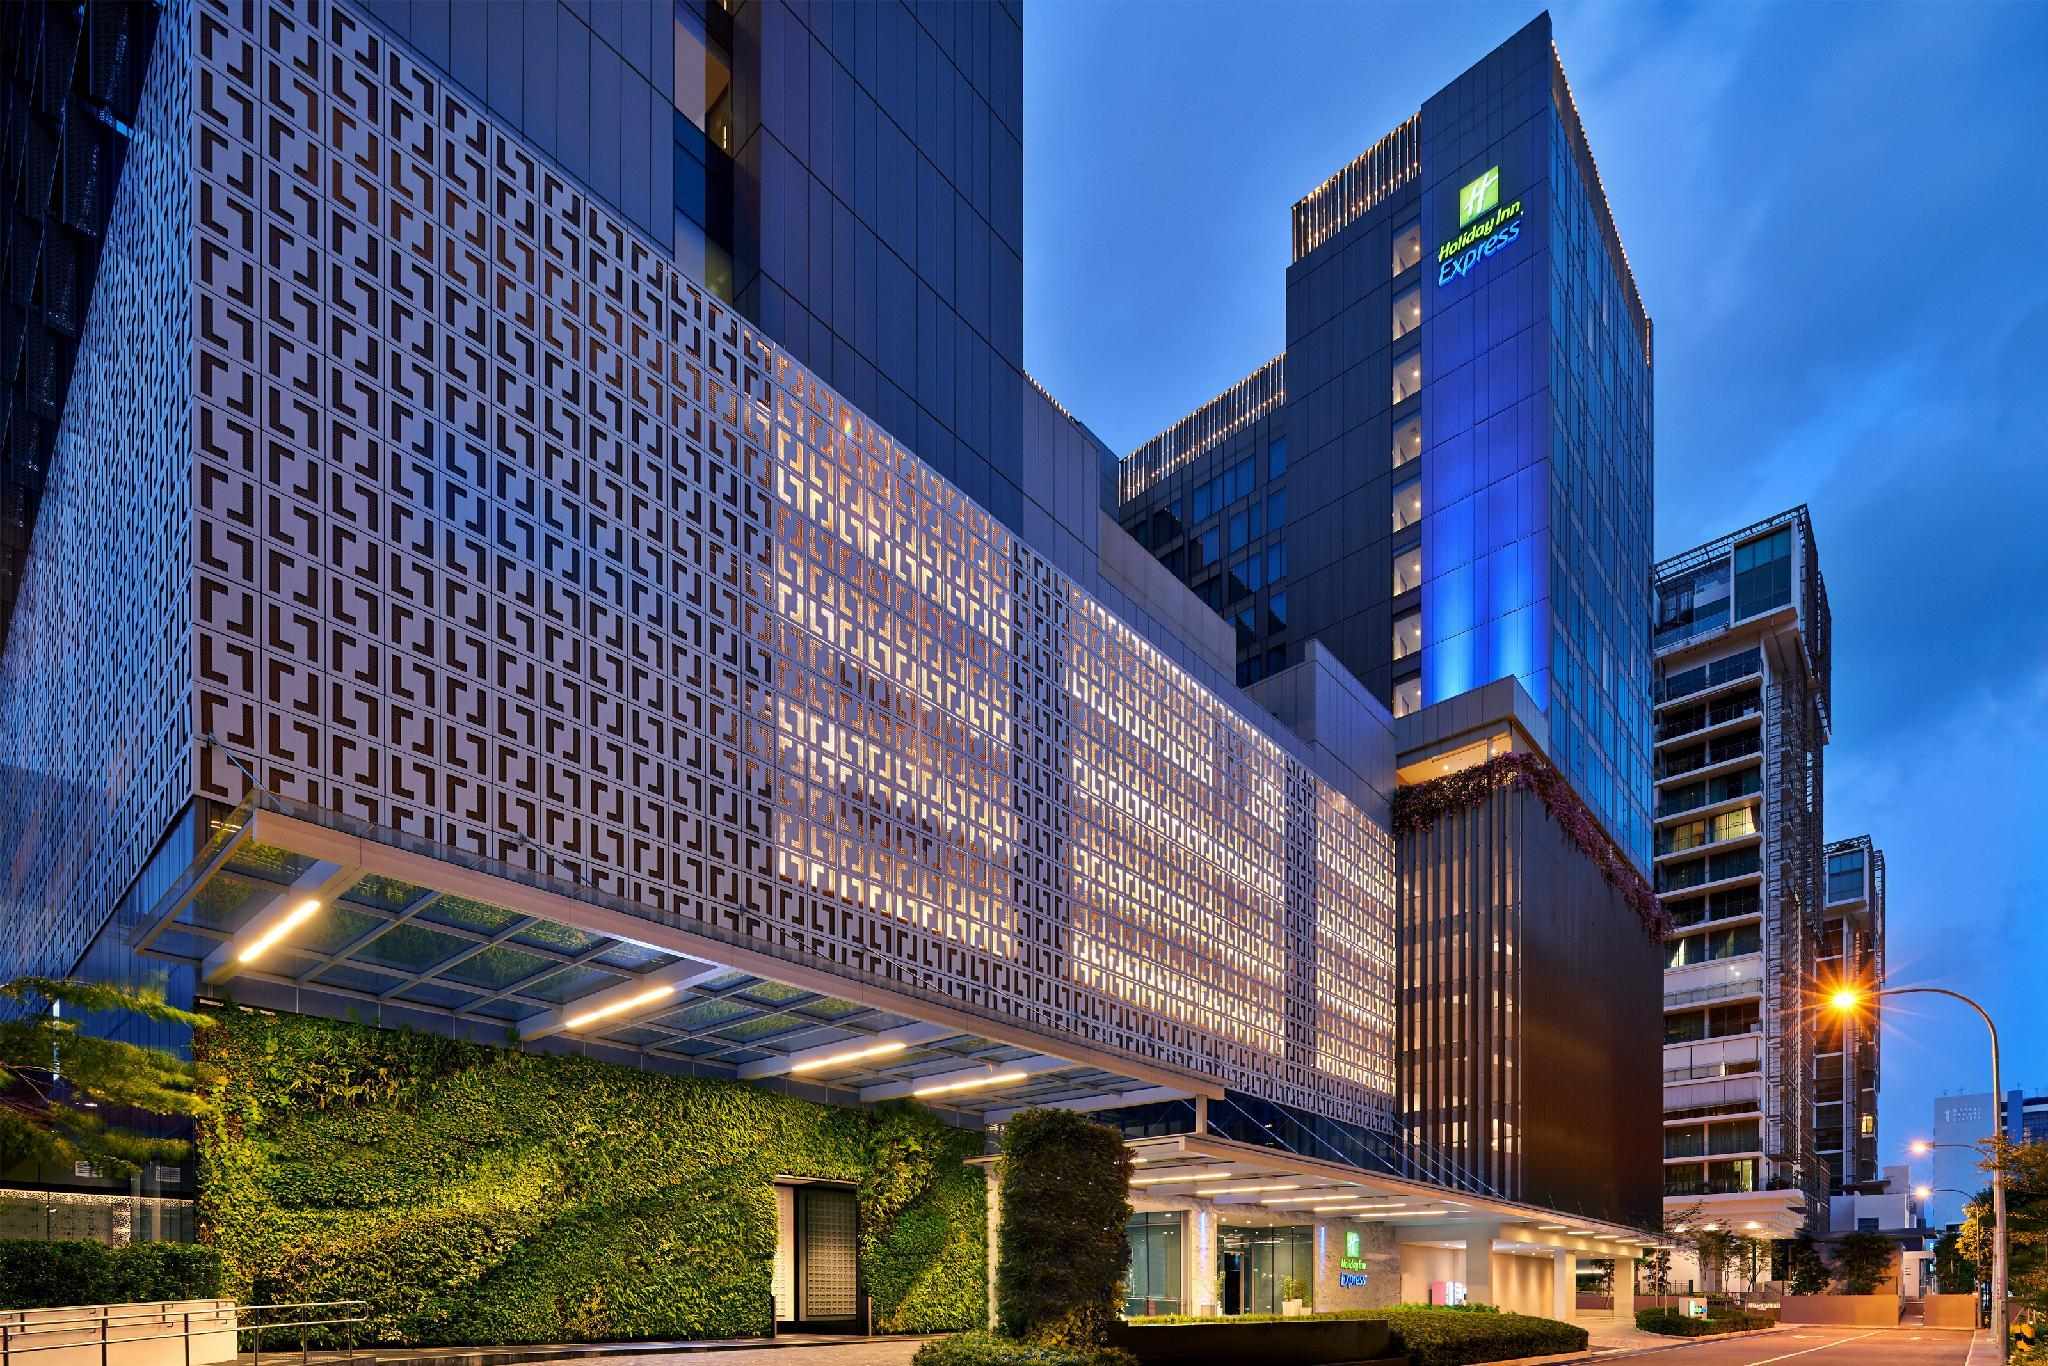 Holiday Inn Express Singapore Katong, Bedok